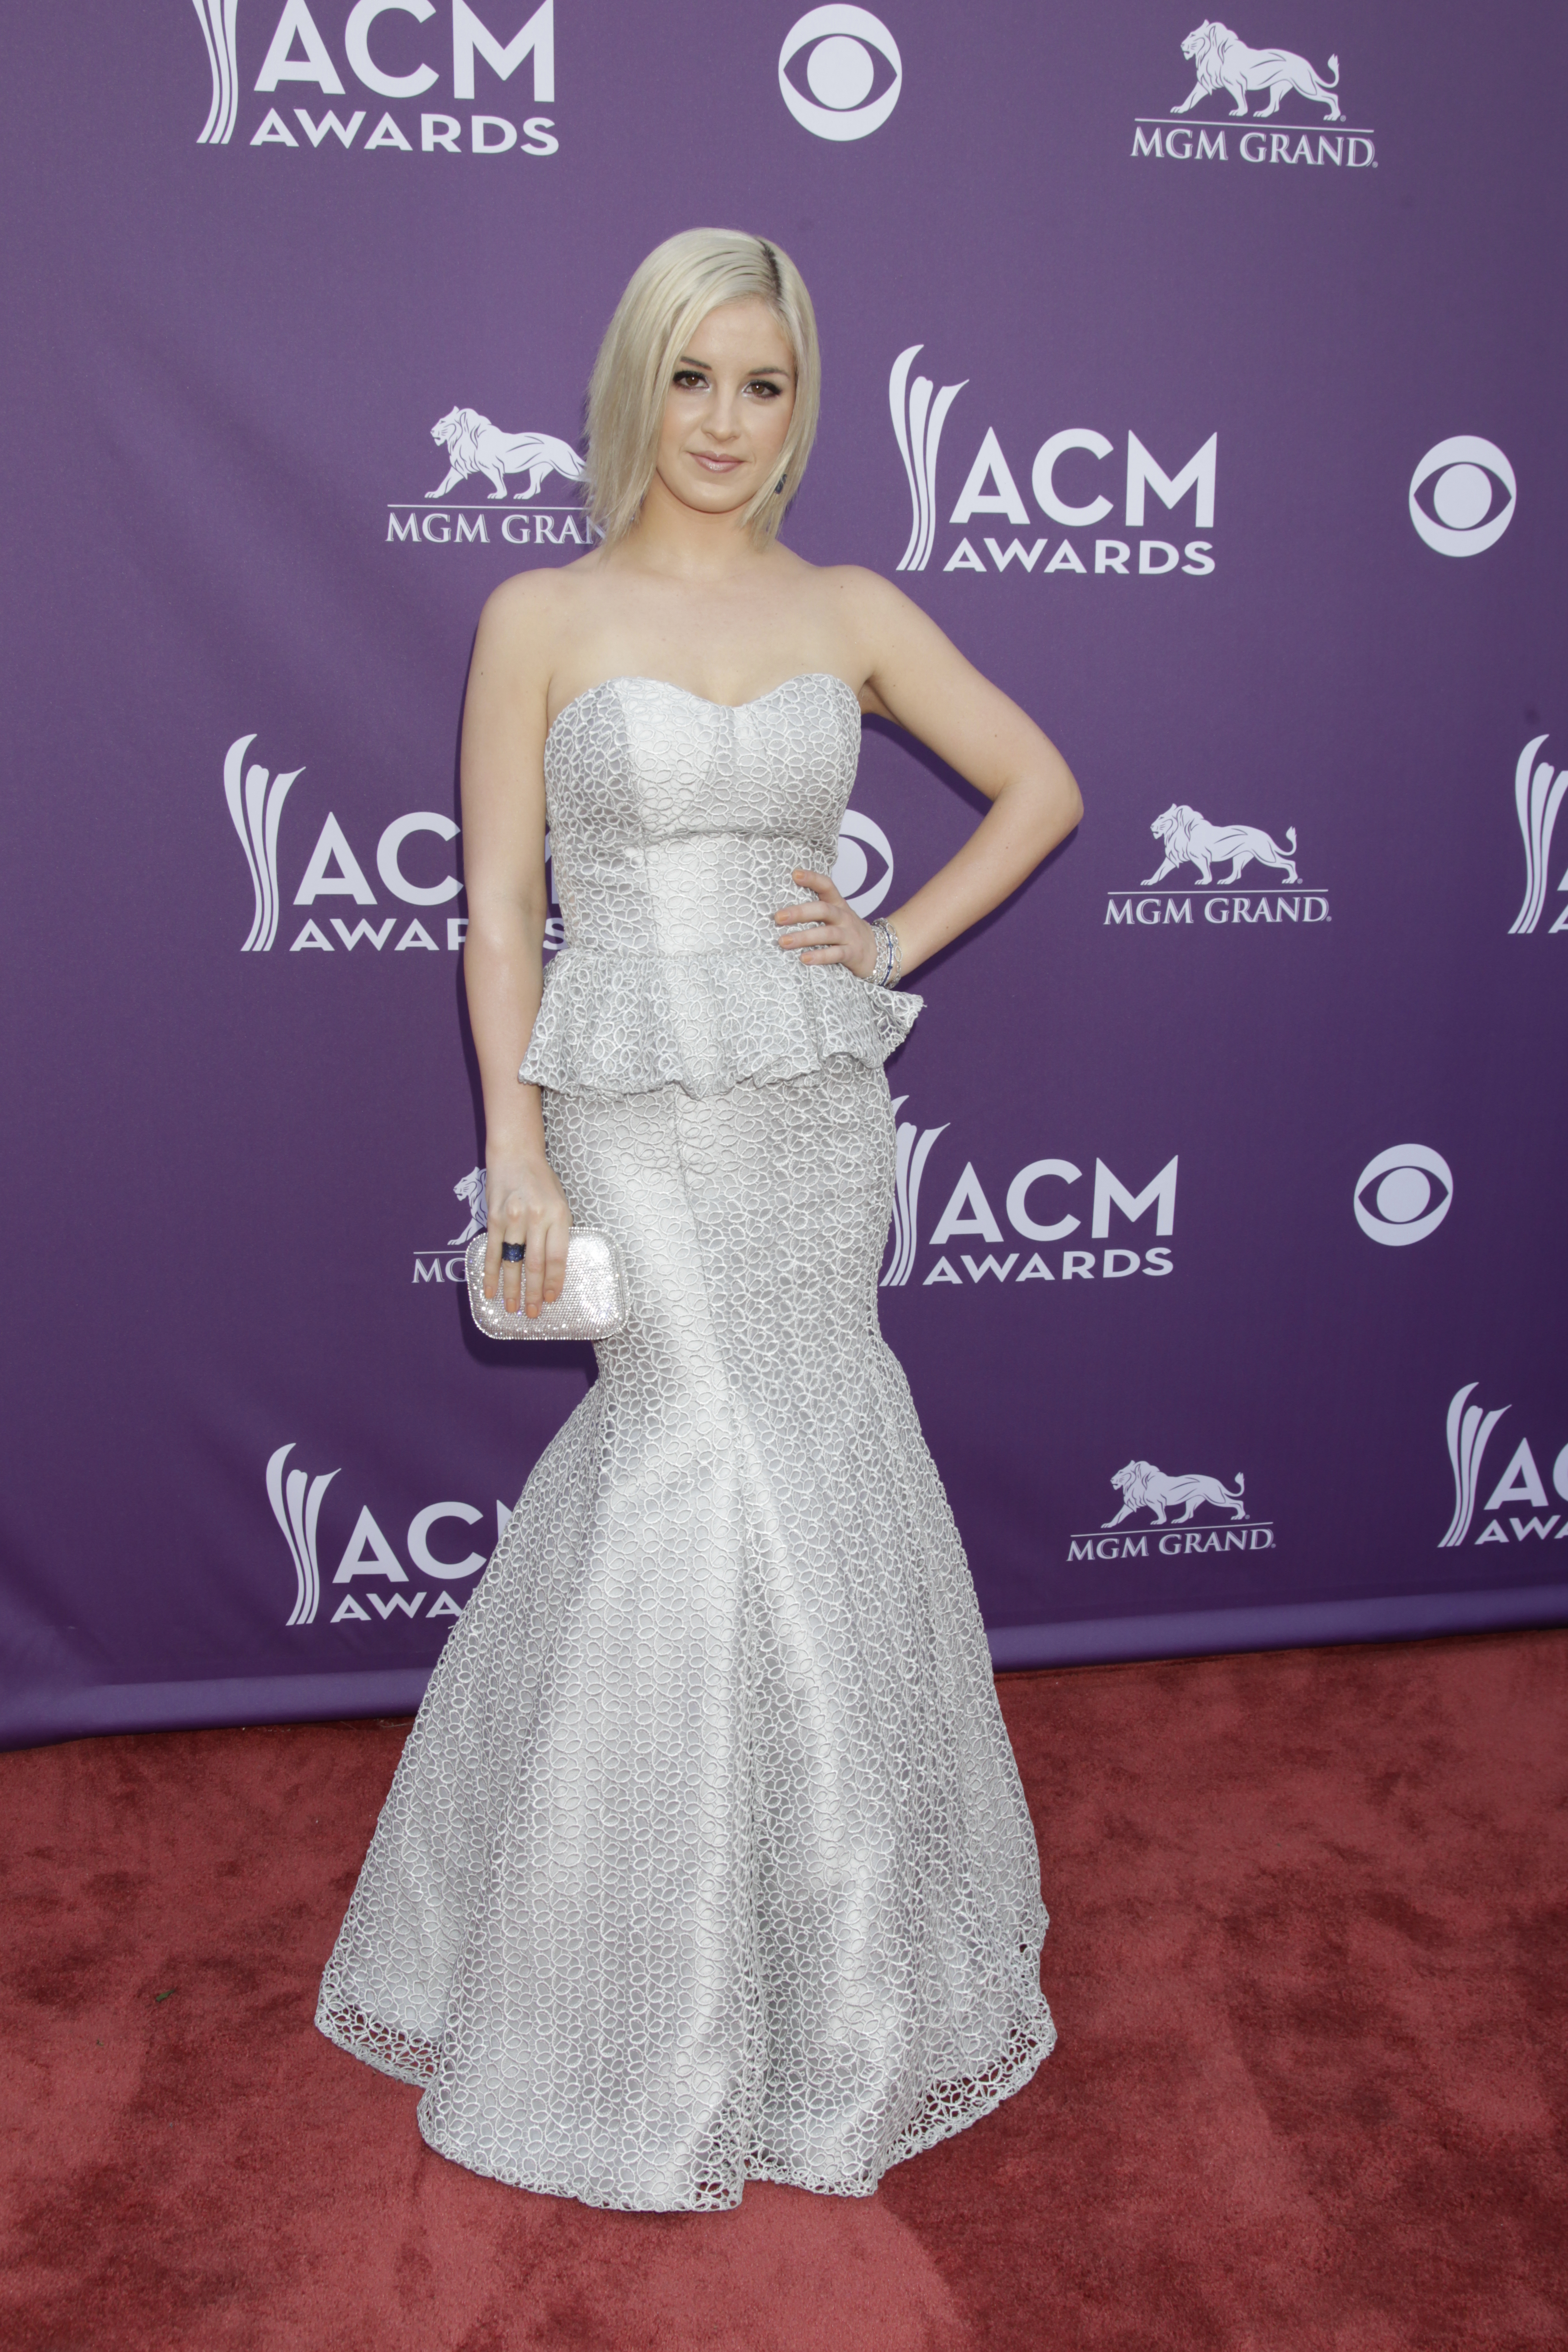 Maggie Rose on the Red Carpet - 48th ACM Awards